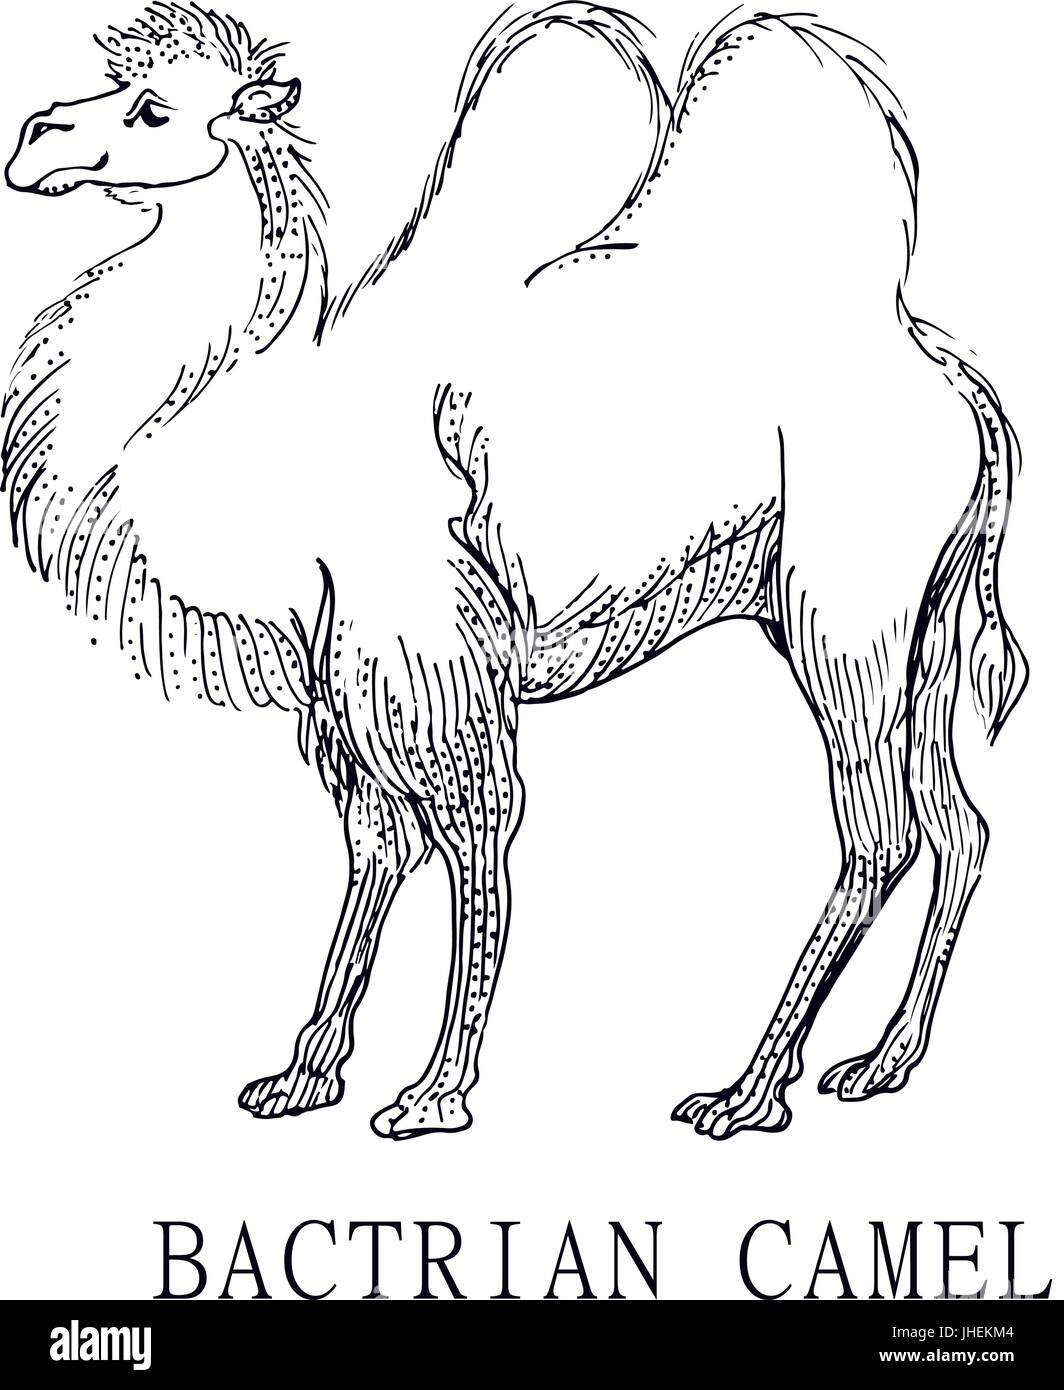 Bactrian camel, Illustration sketch of Camelus bactrianus, for children coloring - Stock Vector